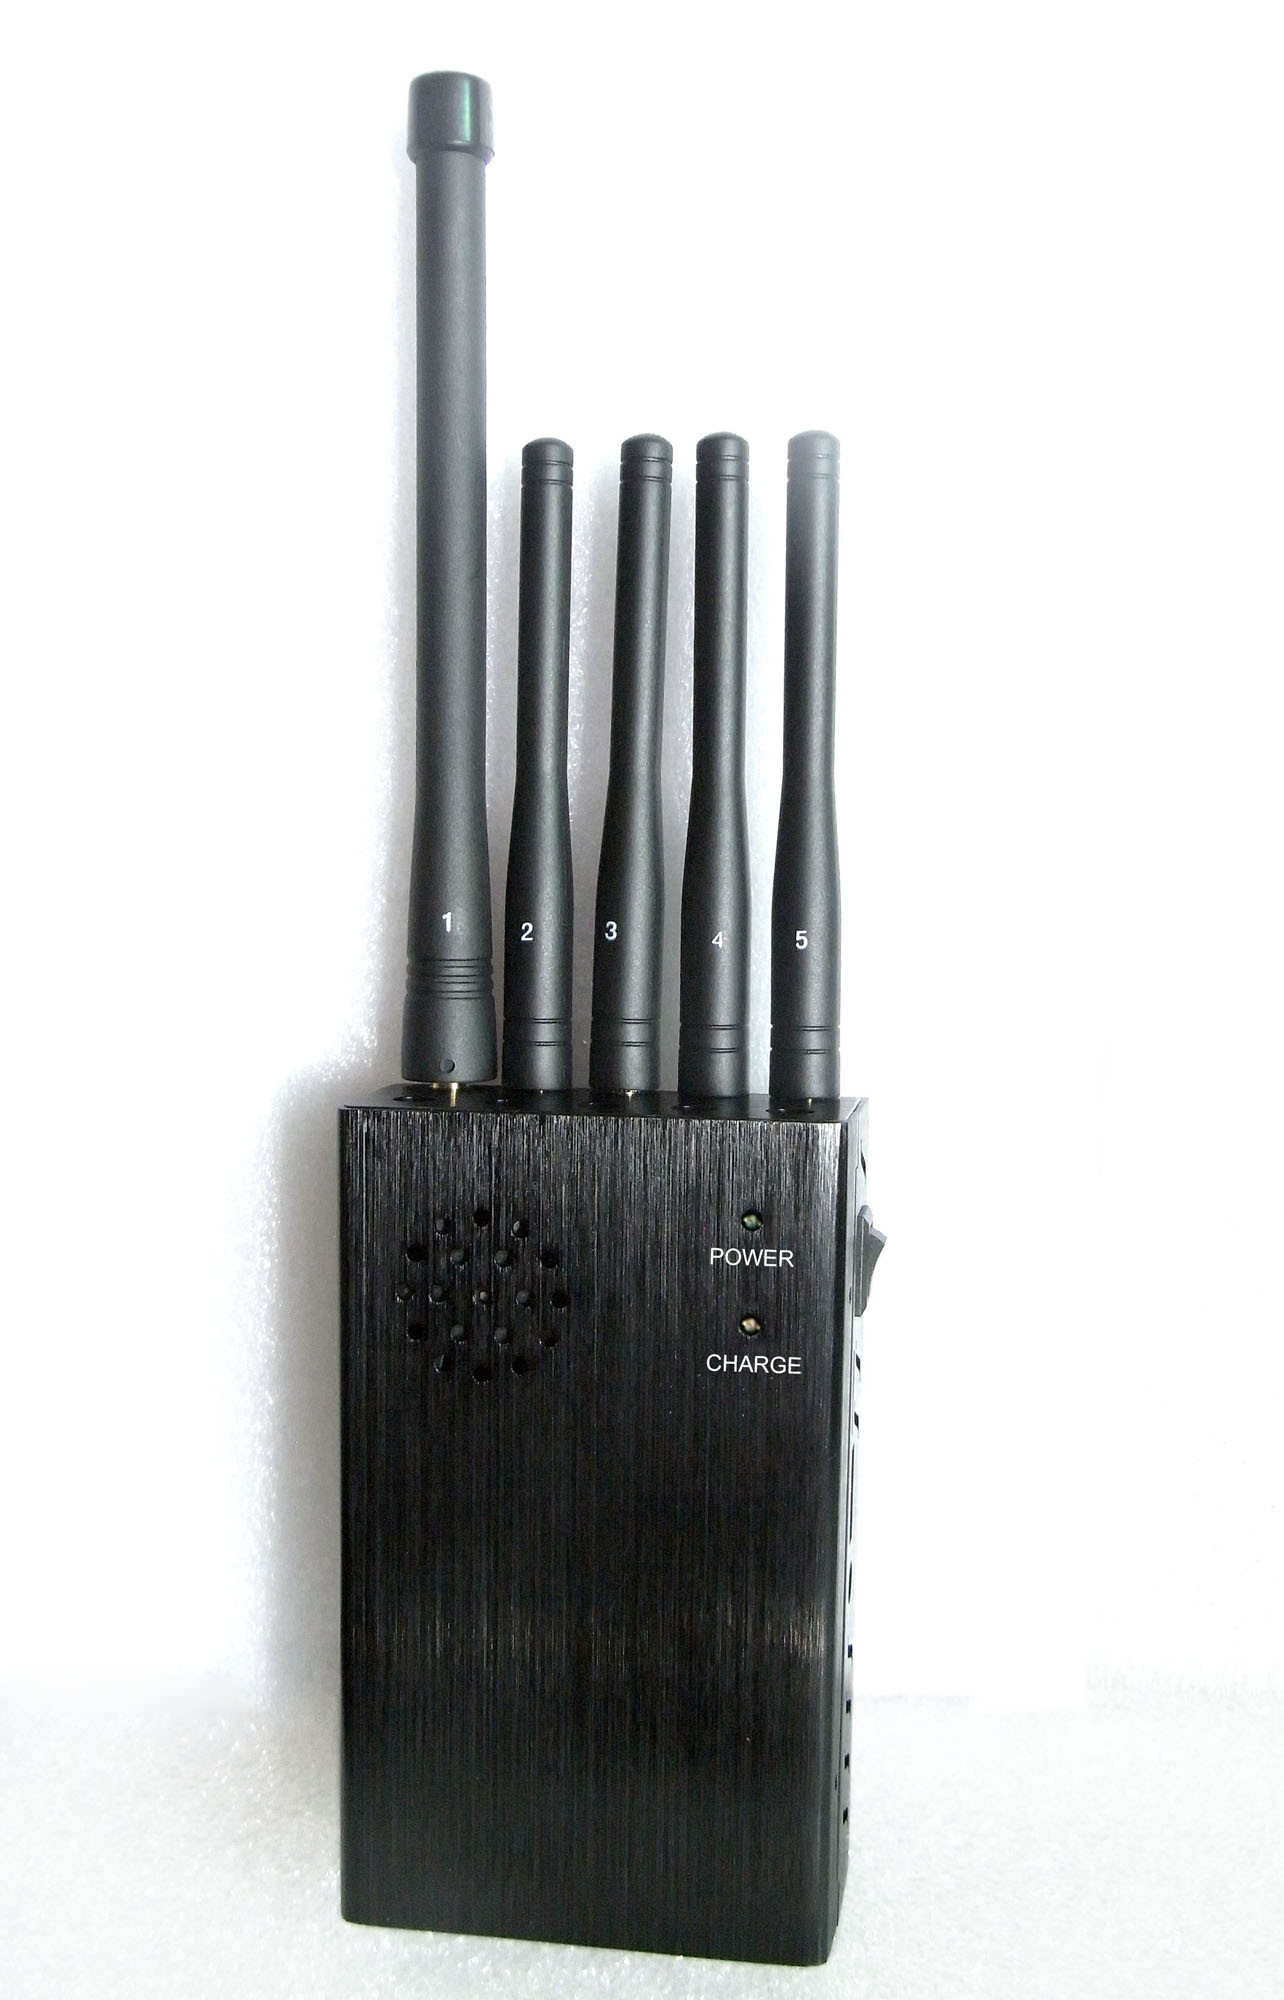 phone jammer detect malware , China New Handheld 5 Bands 4G Lte 4G Wimax Cell Phone Jammer 4G Jammer 3G Jammer, 5 Antennas Phone Jammer for GSM, CDMA, 3G, 4glte - China 5 Band Signal Blockers, Five Antennas Jammers